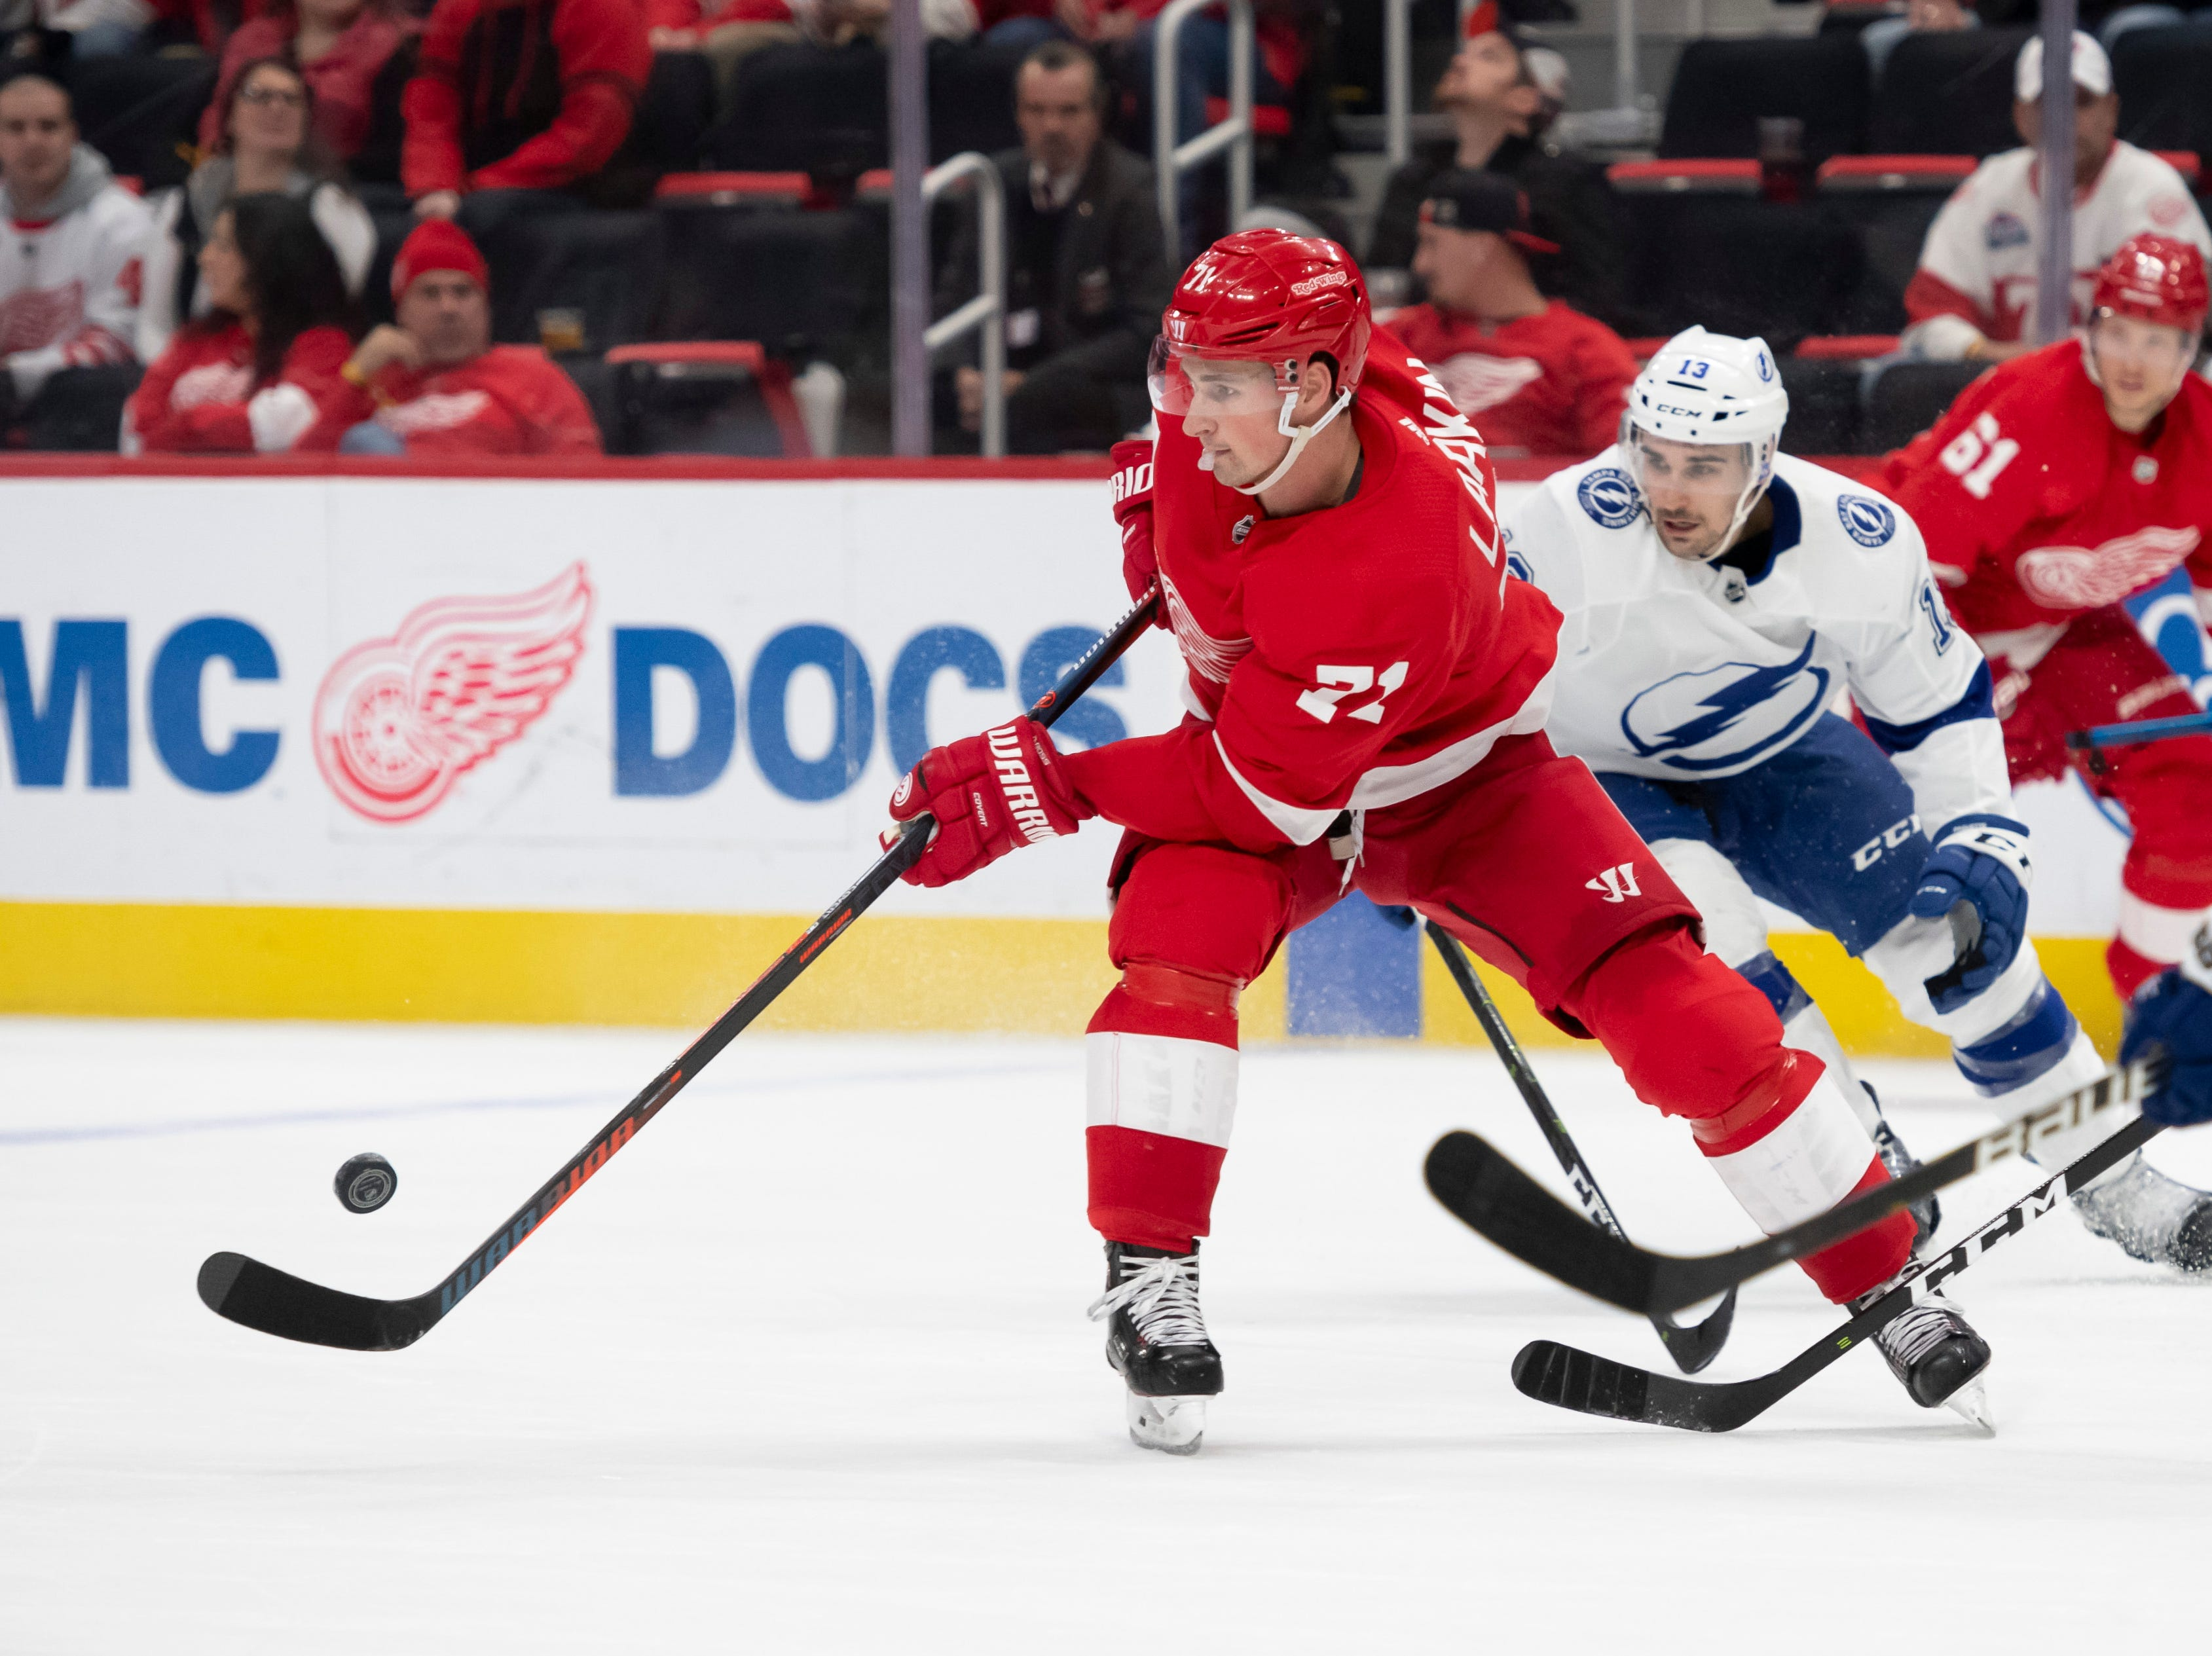 Detroit center Dylan Larkin keeps the puck away from Tampa Bay center Cedric Paquette in the third period.